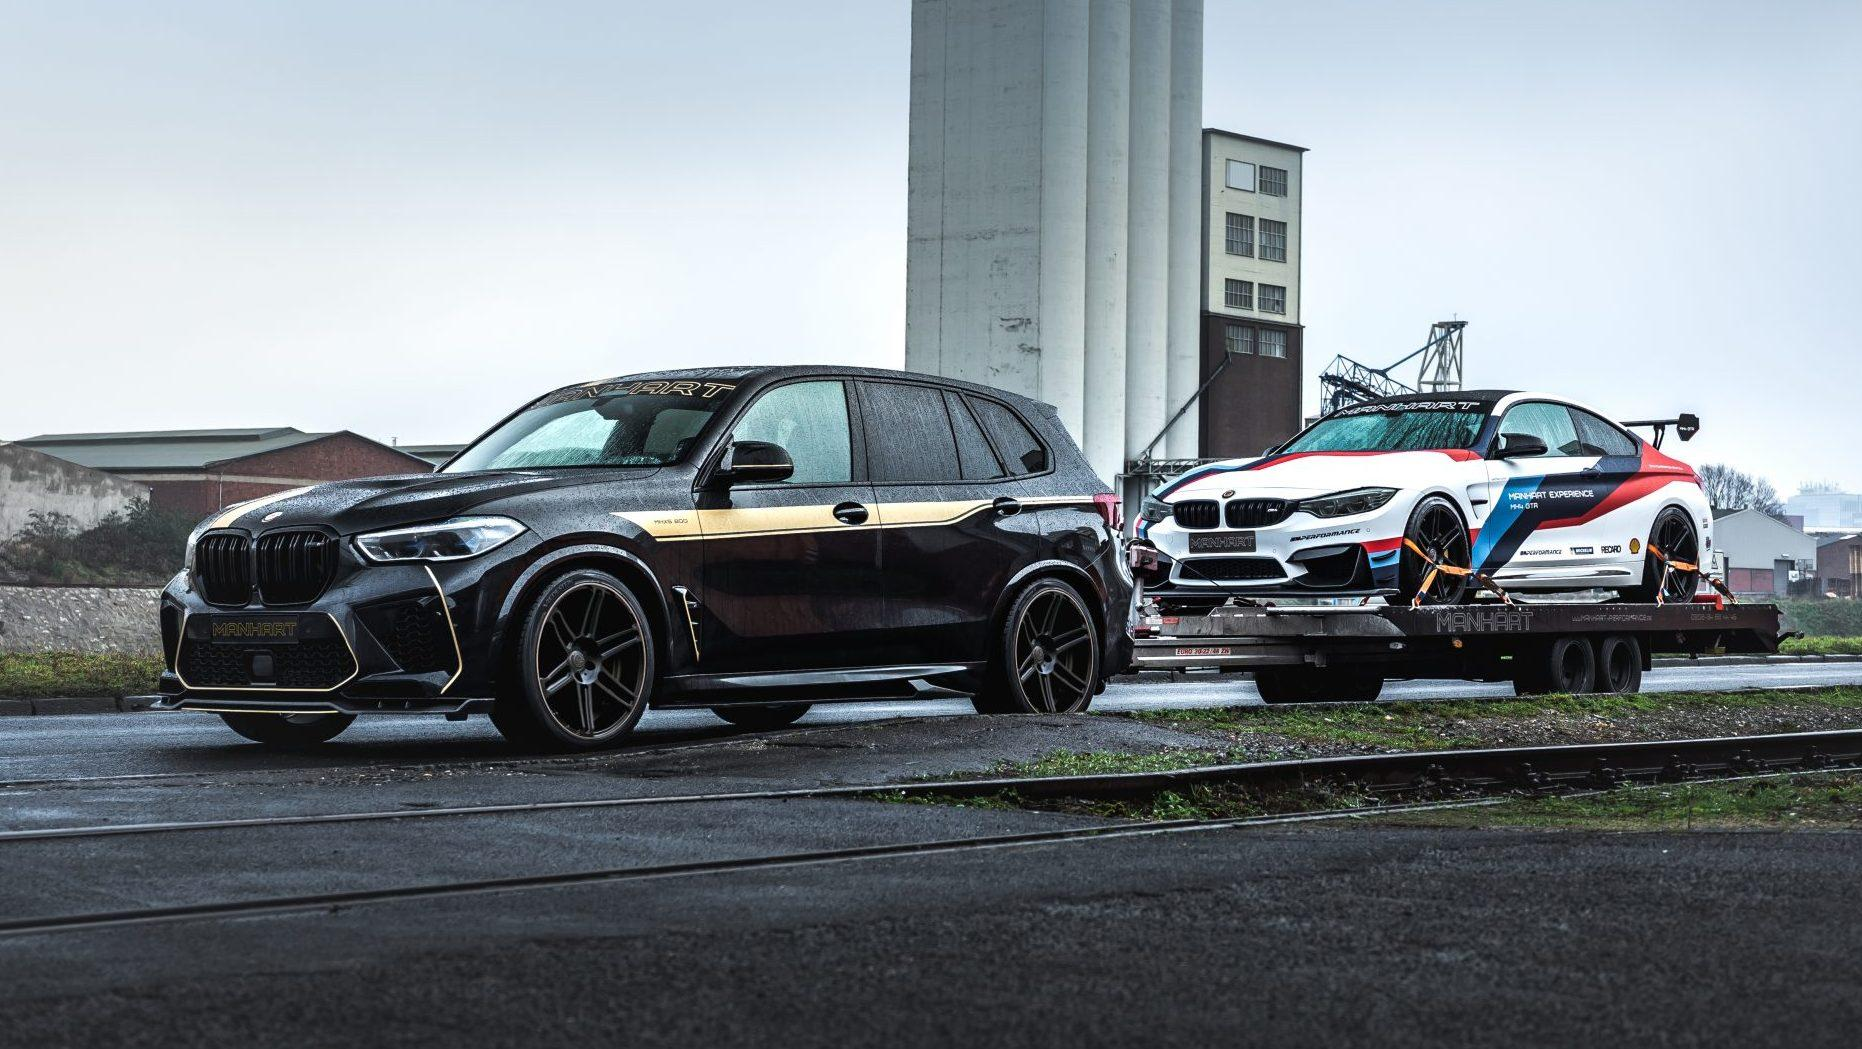 Manhart MHX5 800 (BMW X5 M Competition) en MH4 GTR (BMW M4)